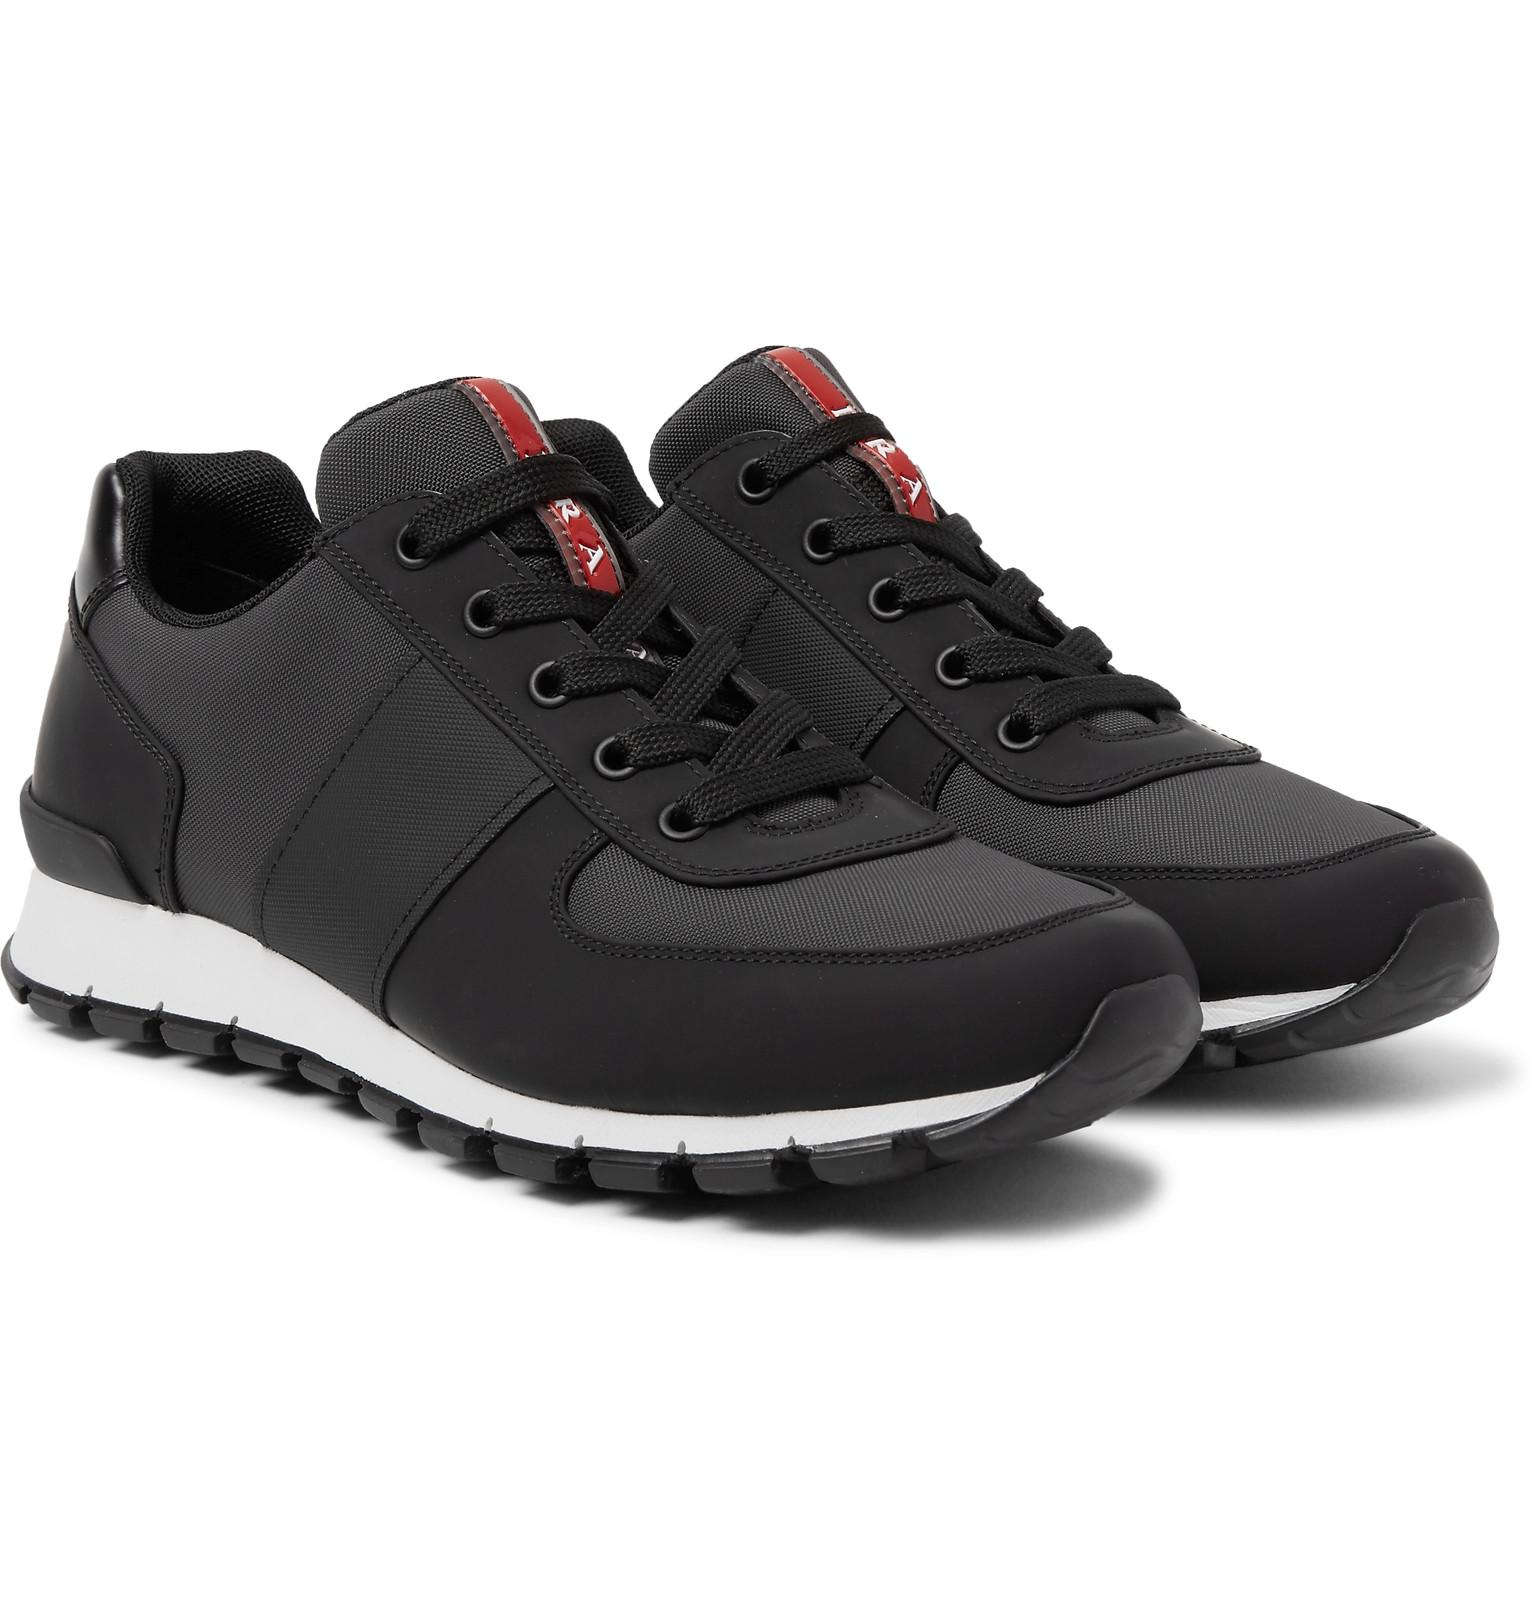 Prada Match Race Panelled Rubber, Mesh and Leather Sneakers